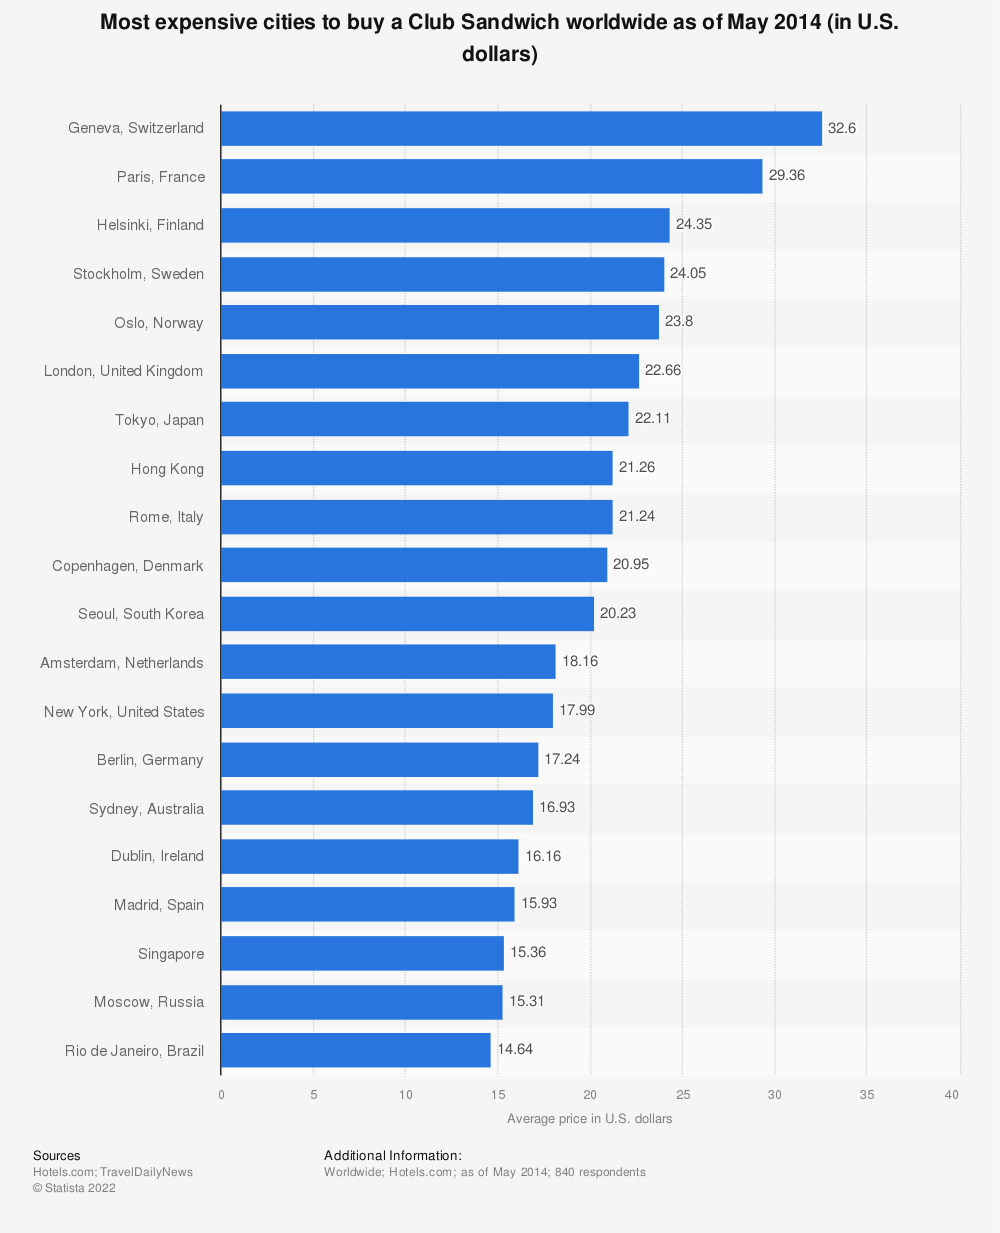 Statistic: Most expensive cities to buy a Club Sandwich worldwide as of May 2014 (in U.S. dollars) | Statista